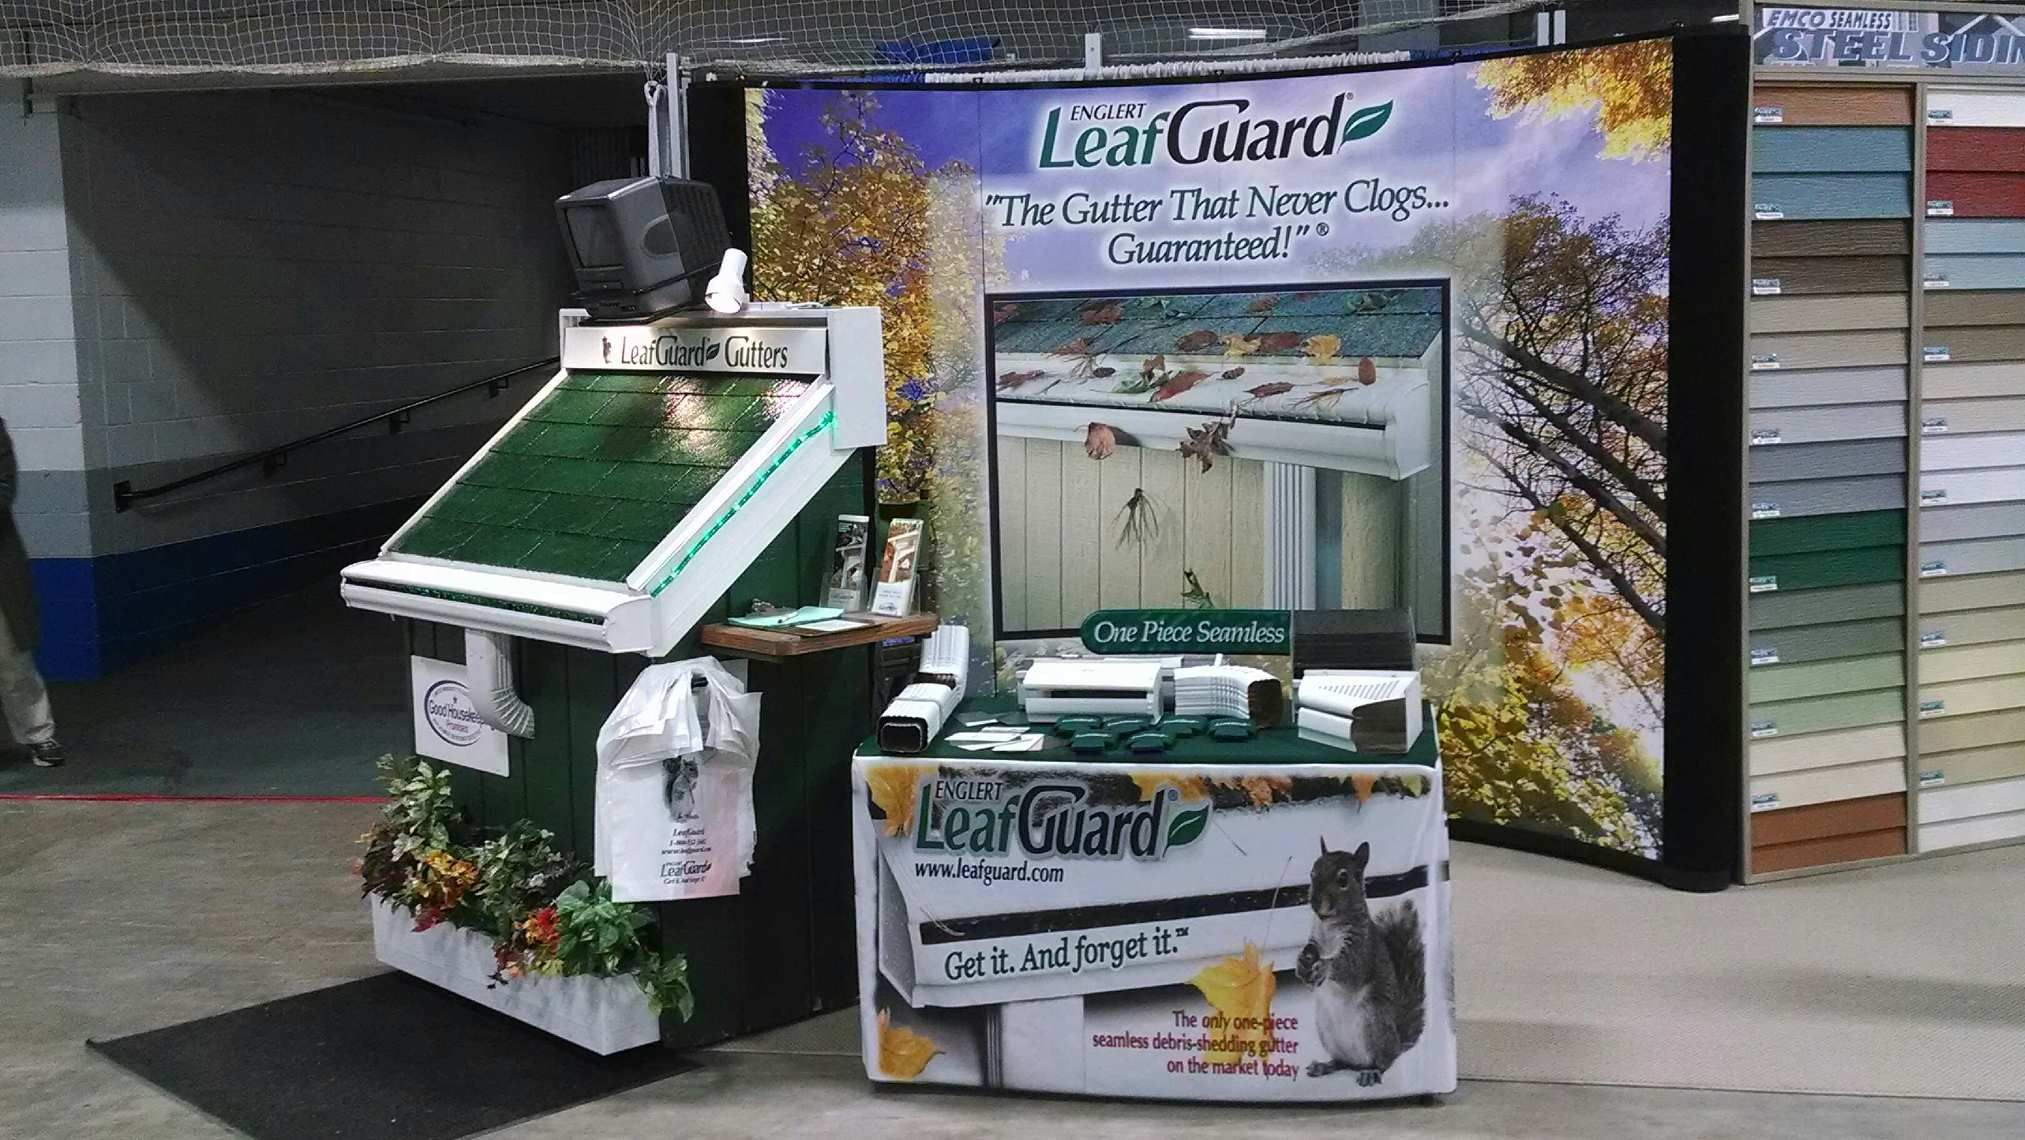 Display Of Our Product Leafguard With Images Seamless